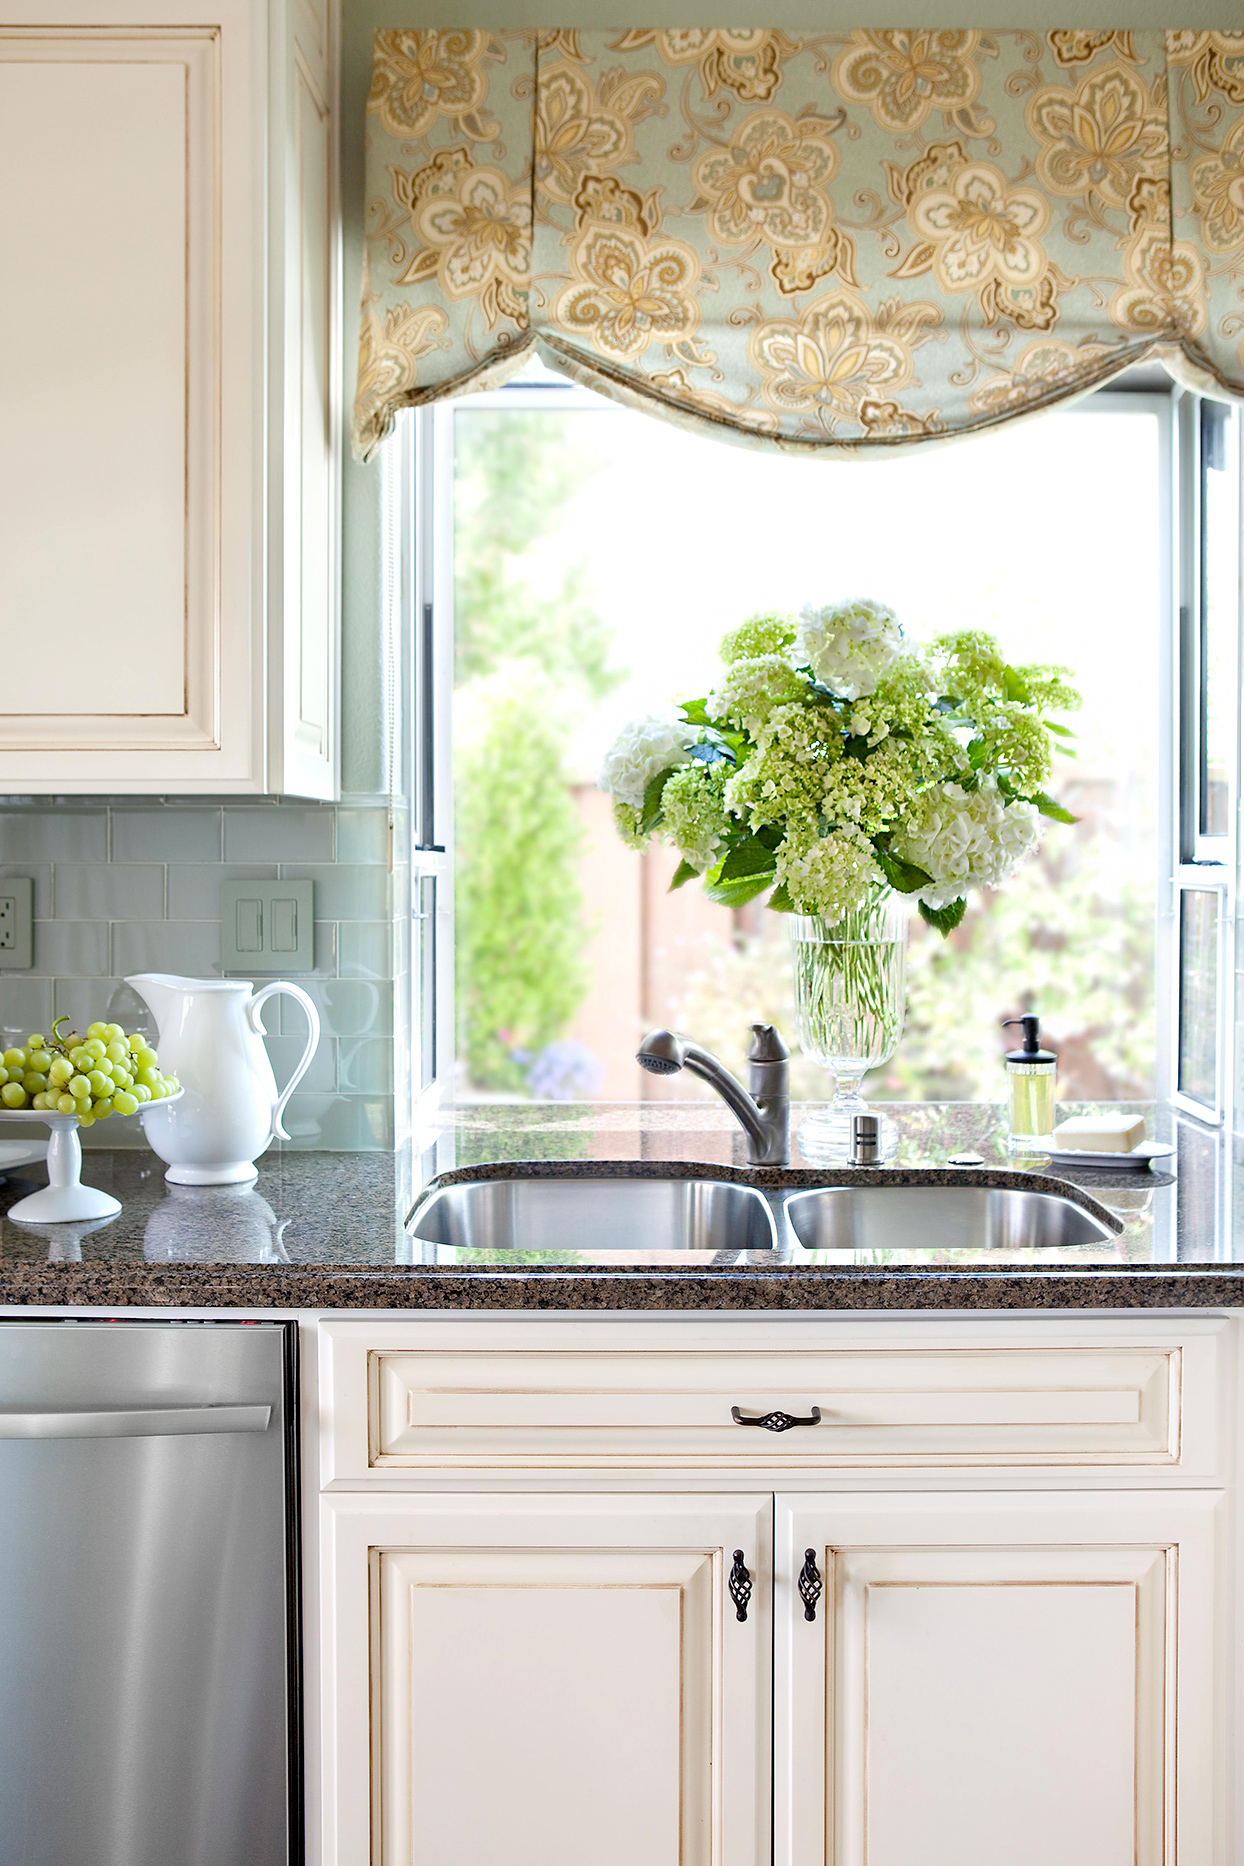 Traditional style kitchen with shade and flowers